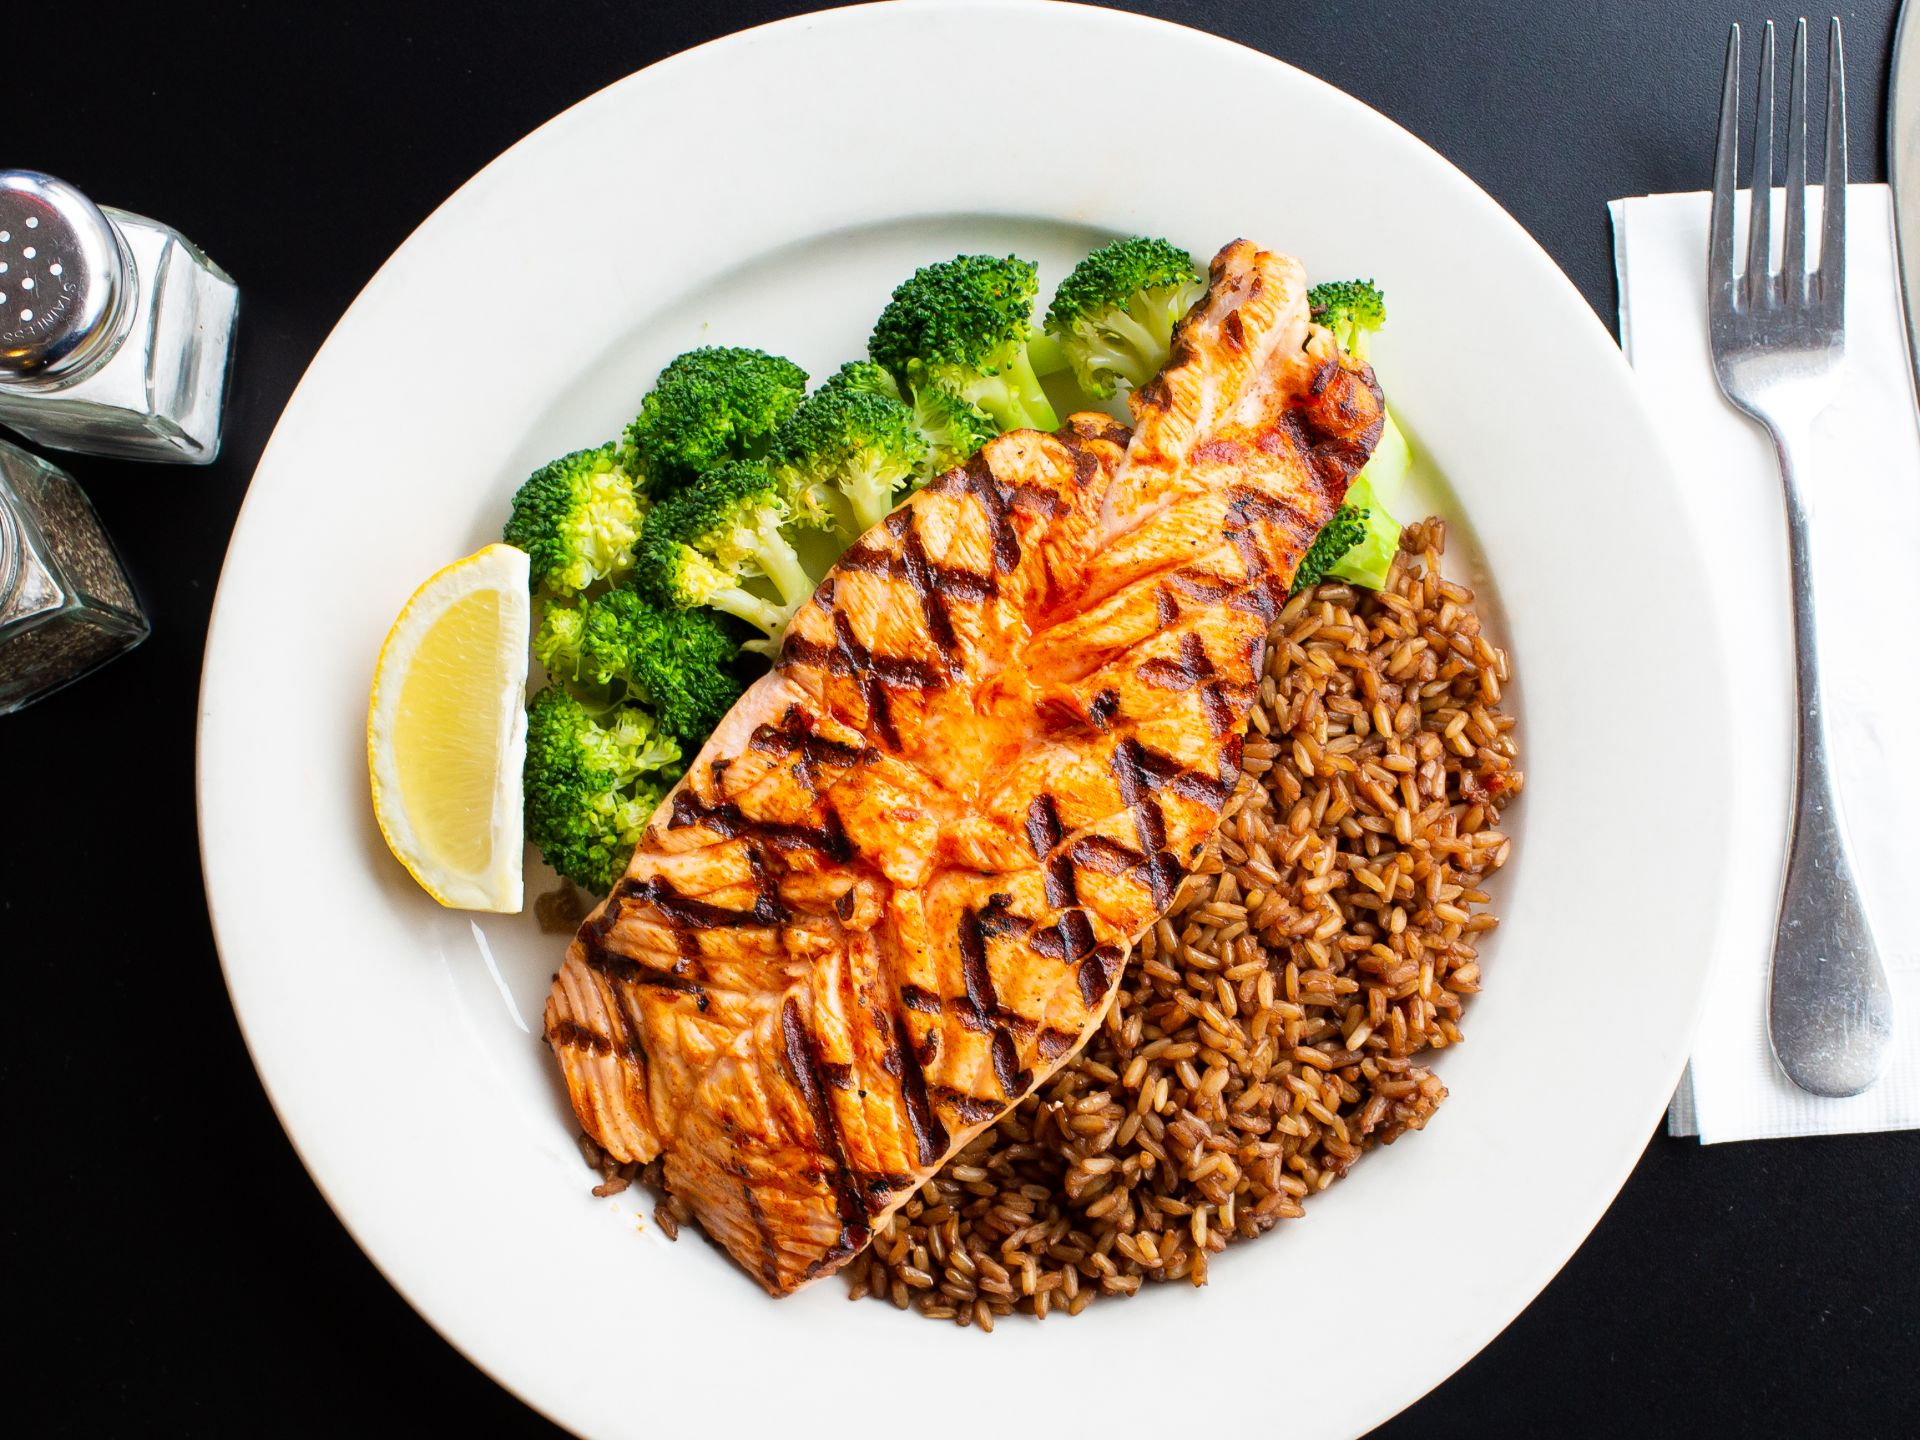 Grilled salmon with brown rice, broccoli and lemon